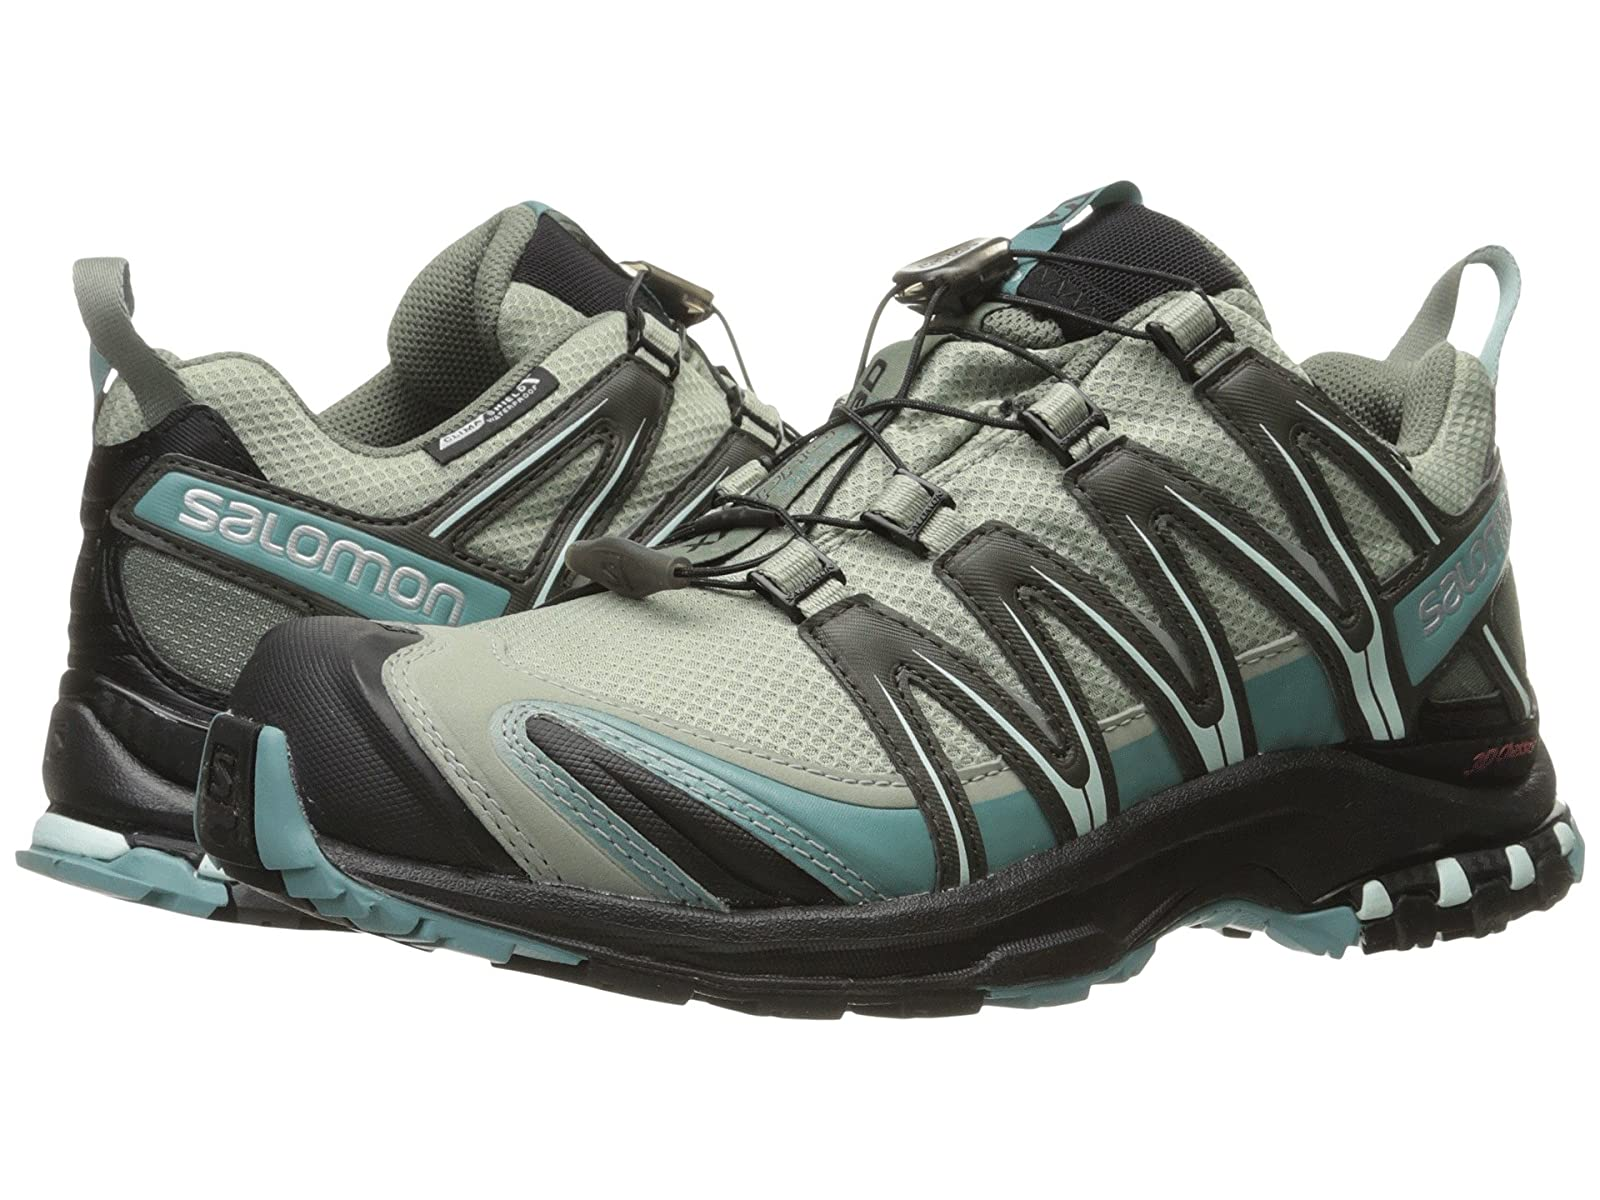 Salomon XA PRO 3D CS WPAtmospheric grades have affordable shoes